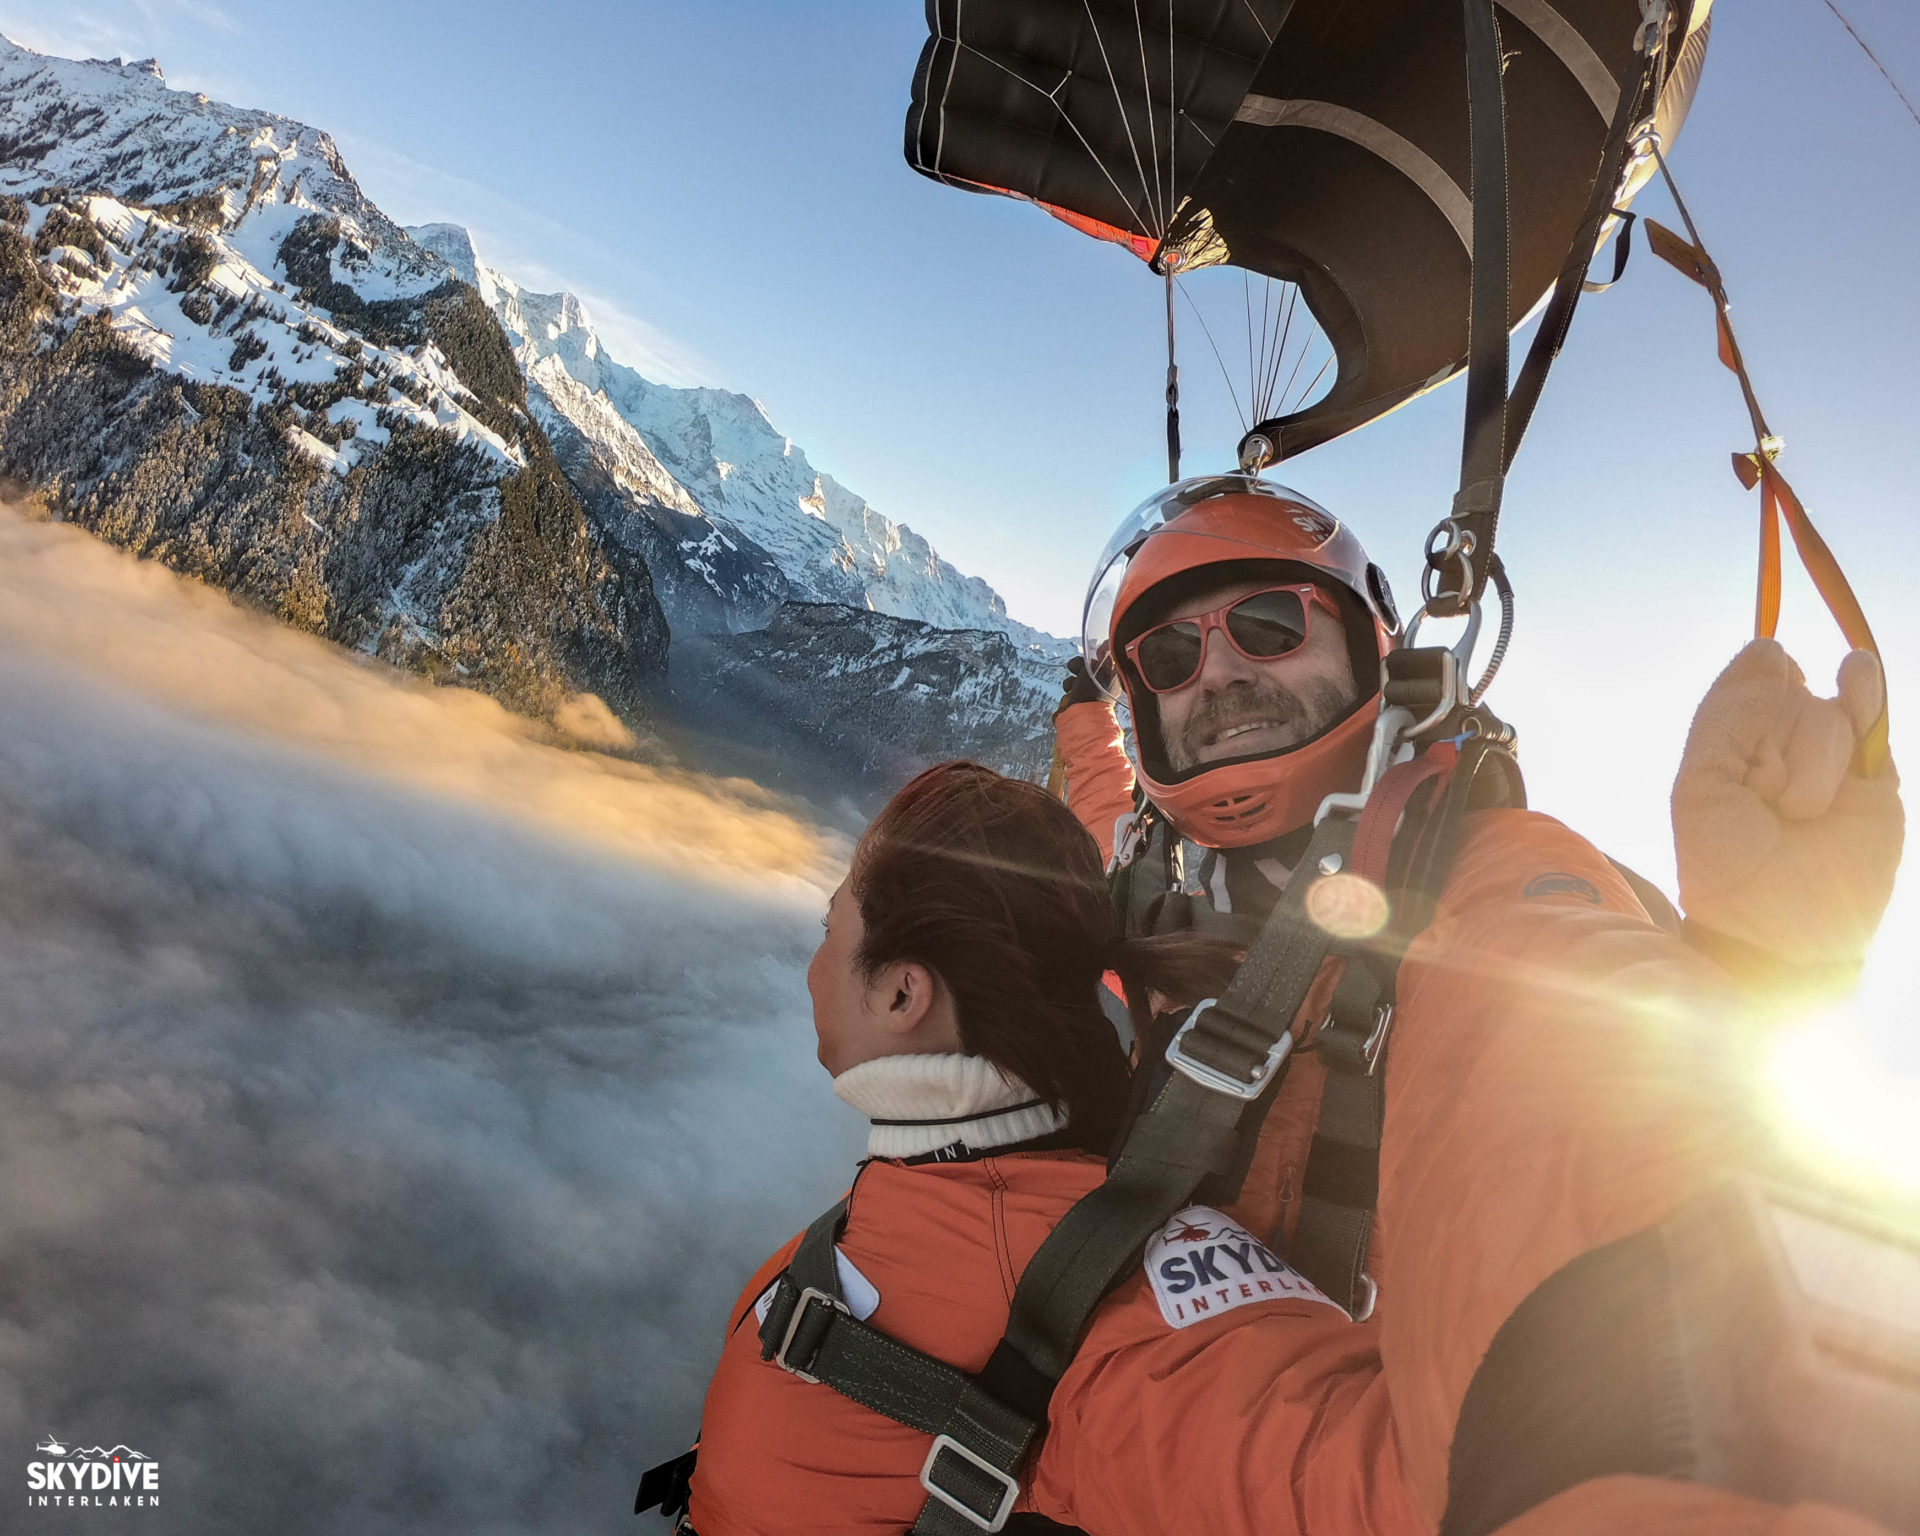 skydive switzerland reviews